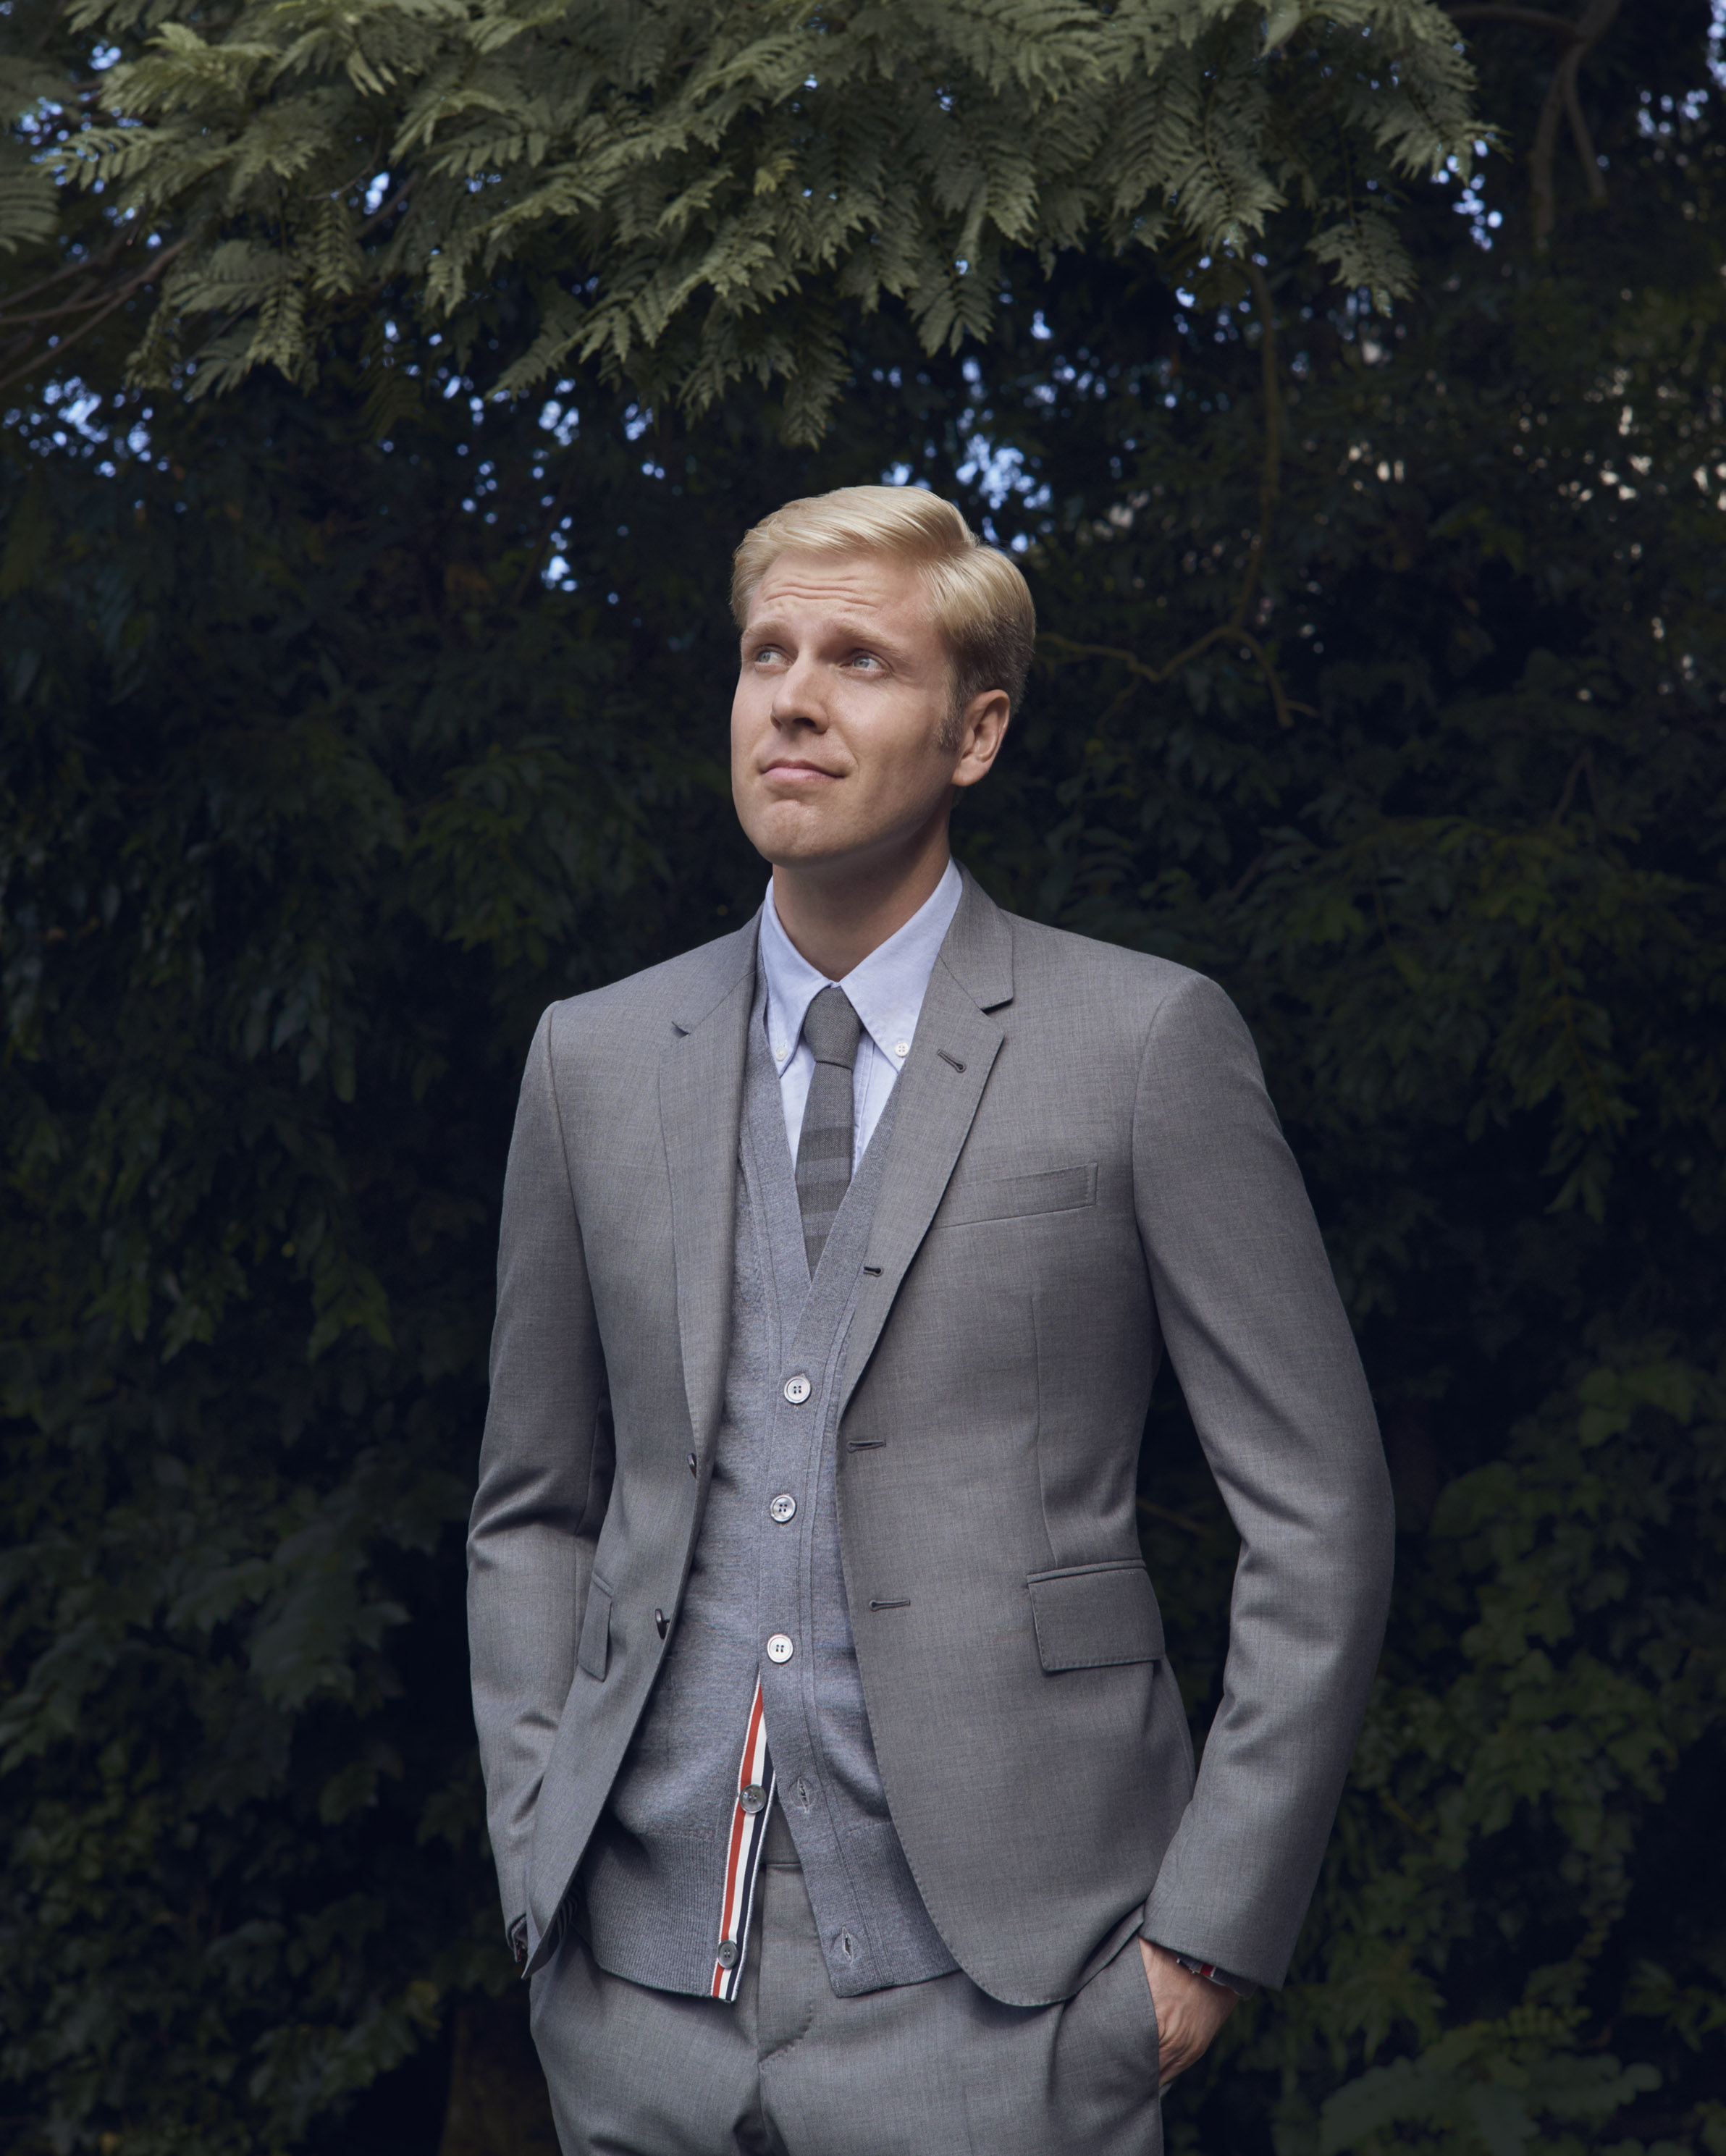 190322_GQ_MarkHumphries_HStewart_12152.JPG